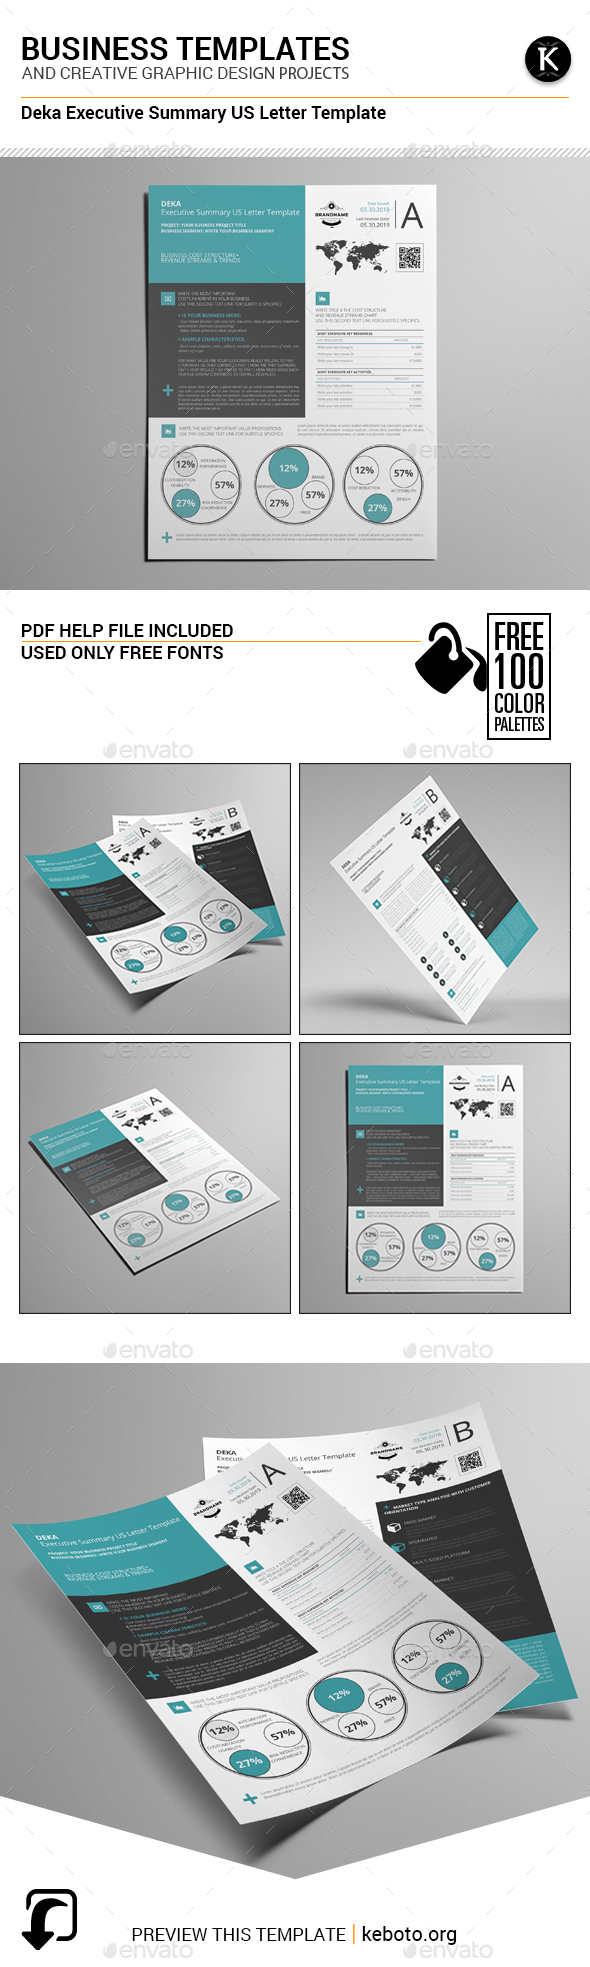 Deka Executive Summary US Letter Template - Miscellaneous Print Templates